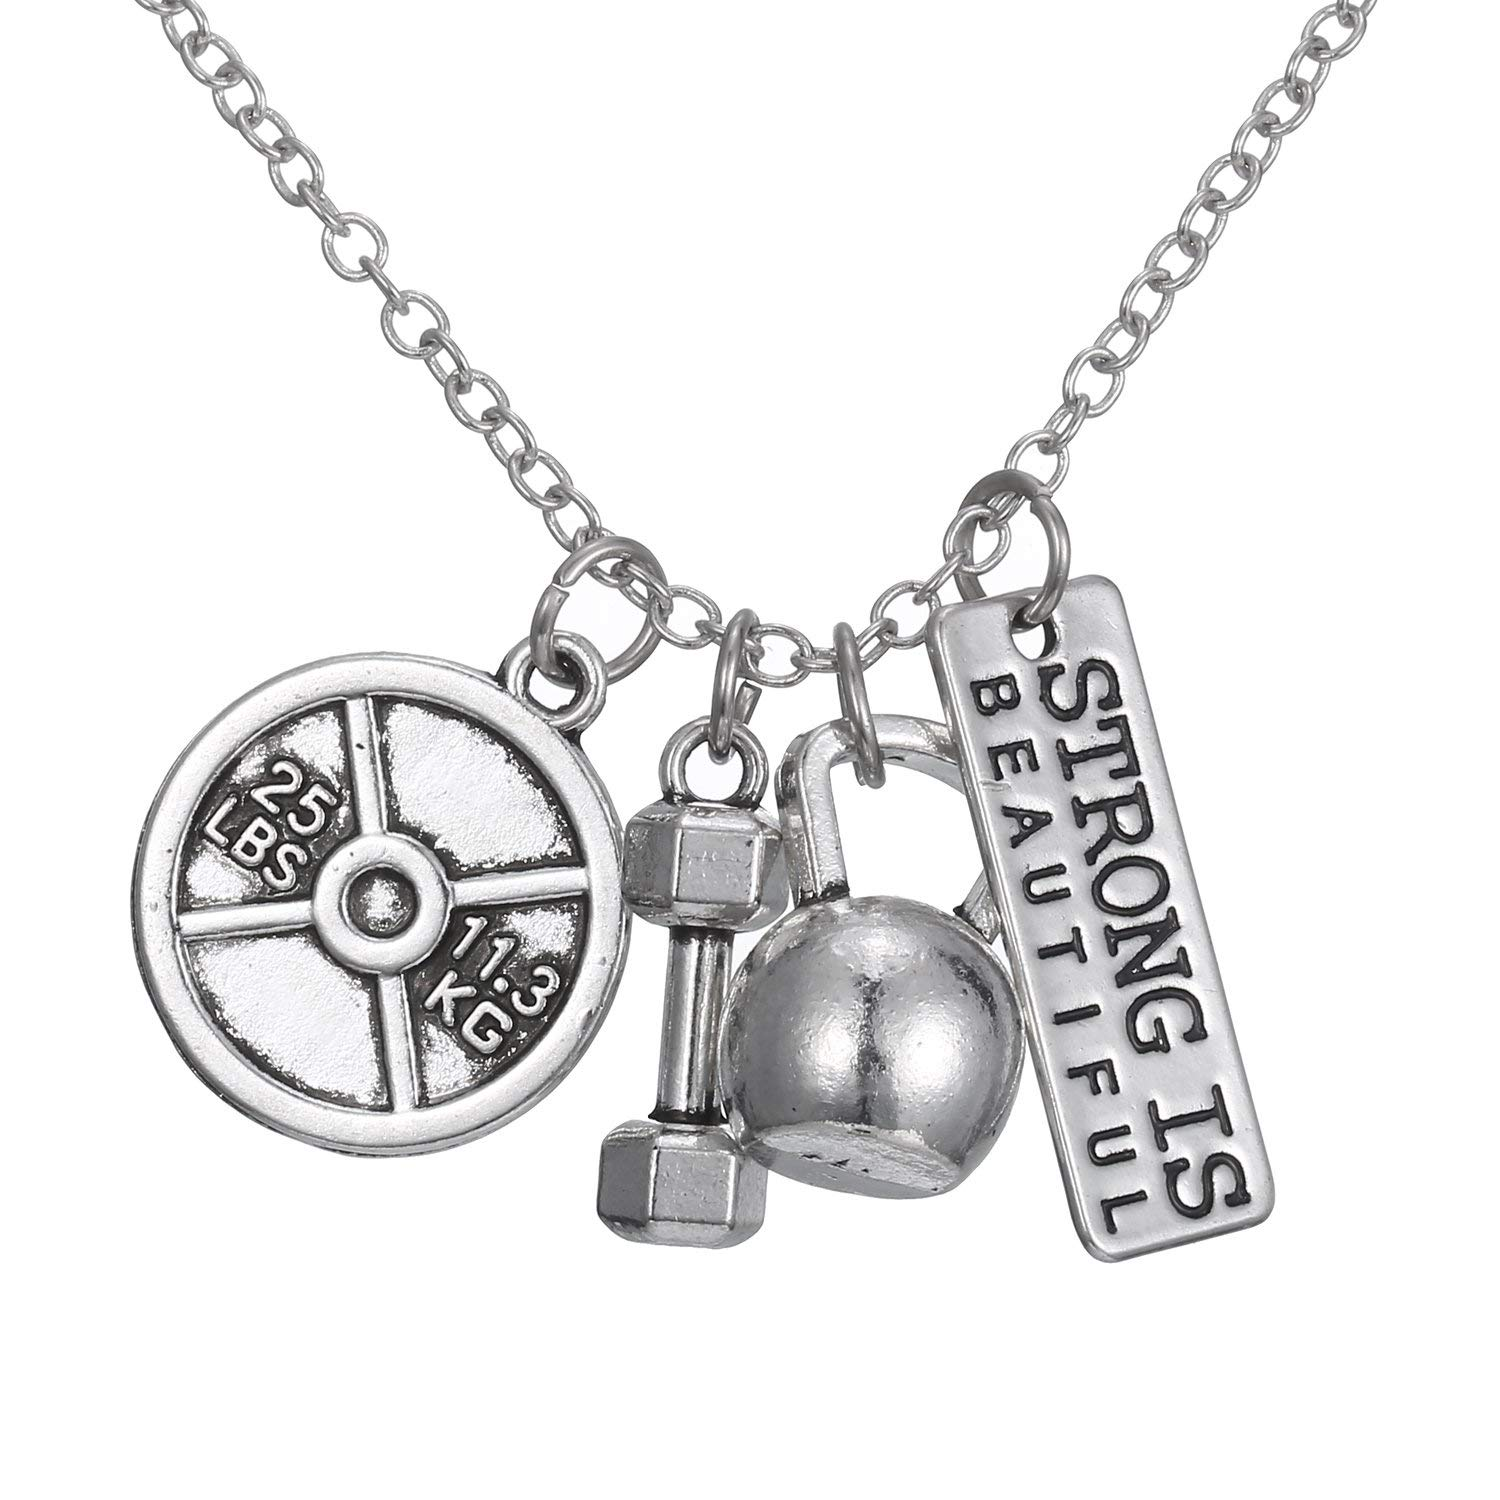 Gmai Beautiful Workout Exercise Weight Lifting Barbell Kettlebell Fitness Silver Fitness Gym Barbell Plate Dumbbell Weight Plate Pendant Jewelry Necklace For Men Women Pendant Necklace